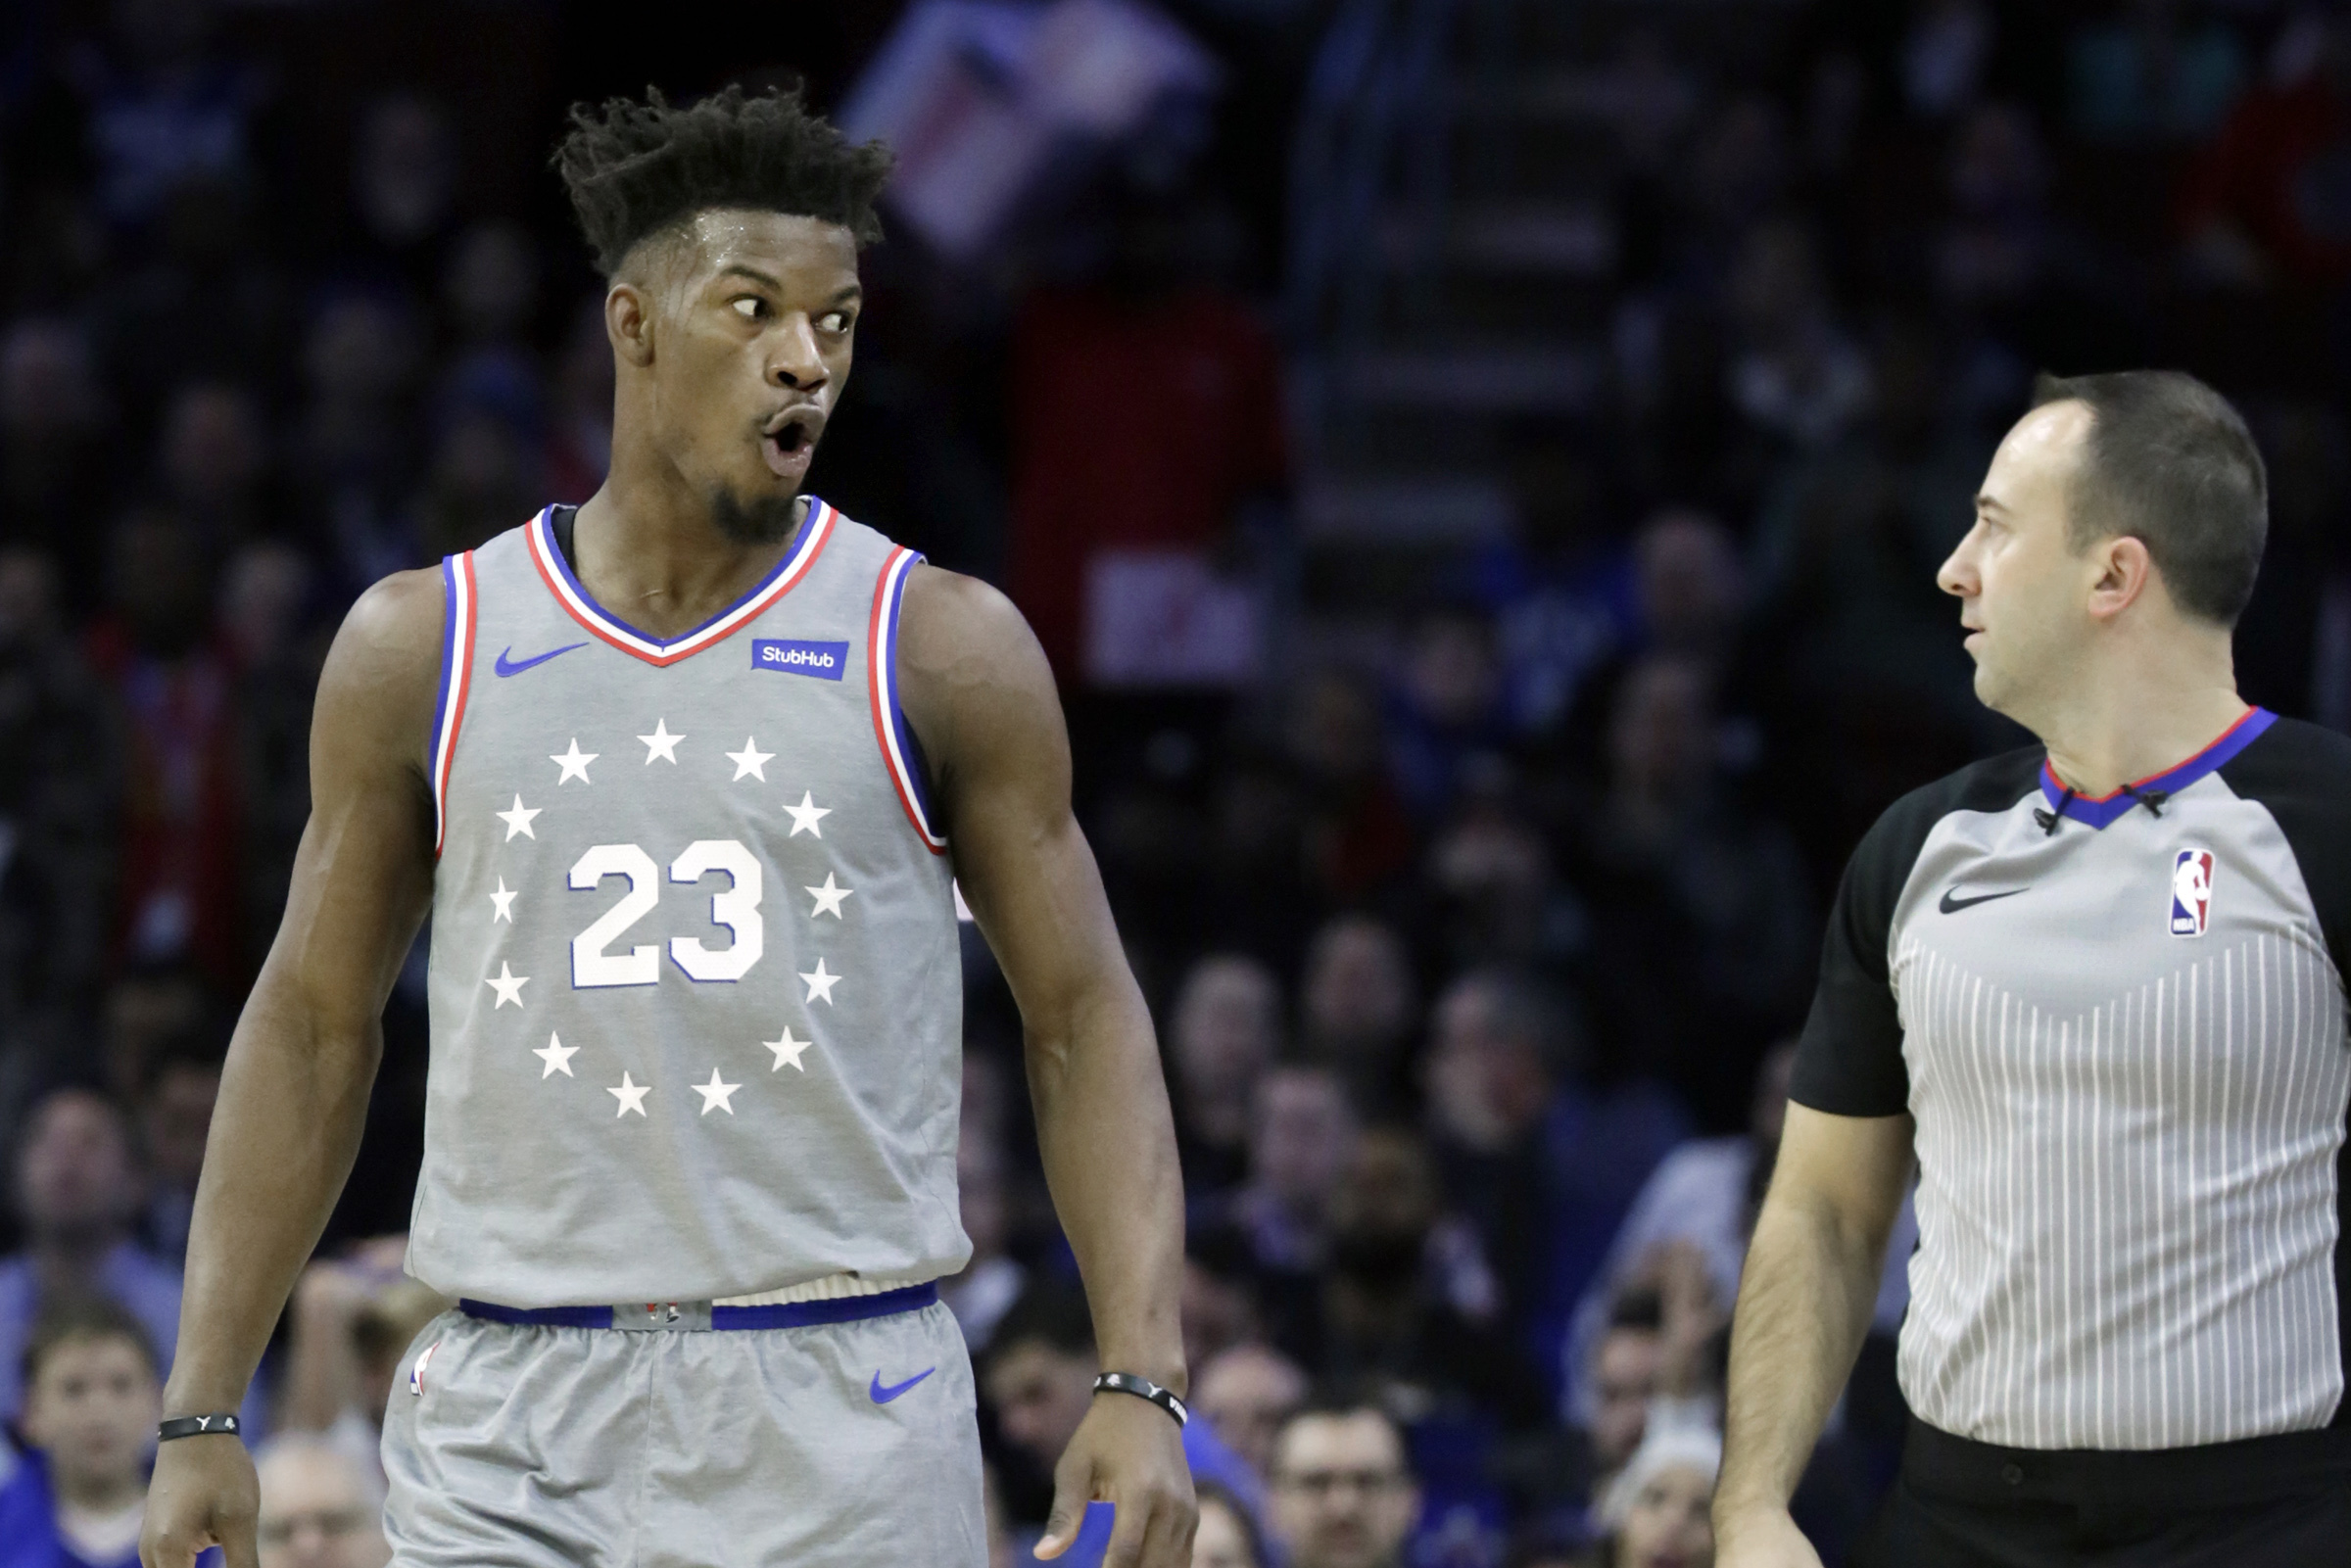 Sixers guard Jimmy Butler reacts after being charged with goaltending during the Utah Jazz vs. Philadelphia 76ers NBA game at the Wells Fargo Center in Phila., Pa. on November 16, 2018.